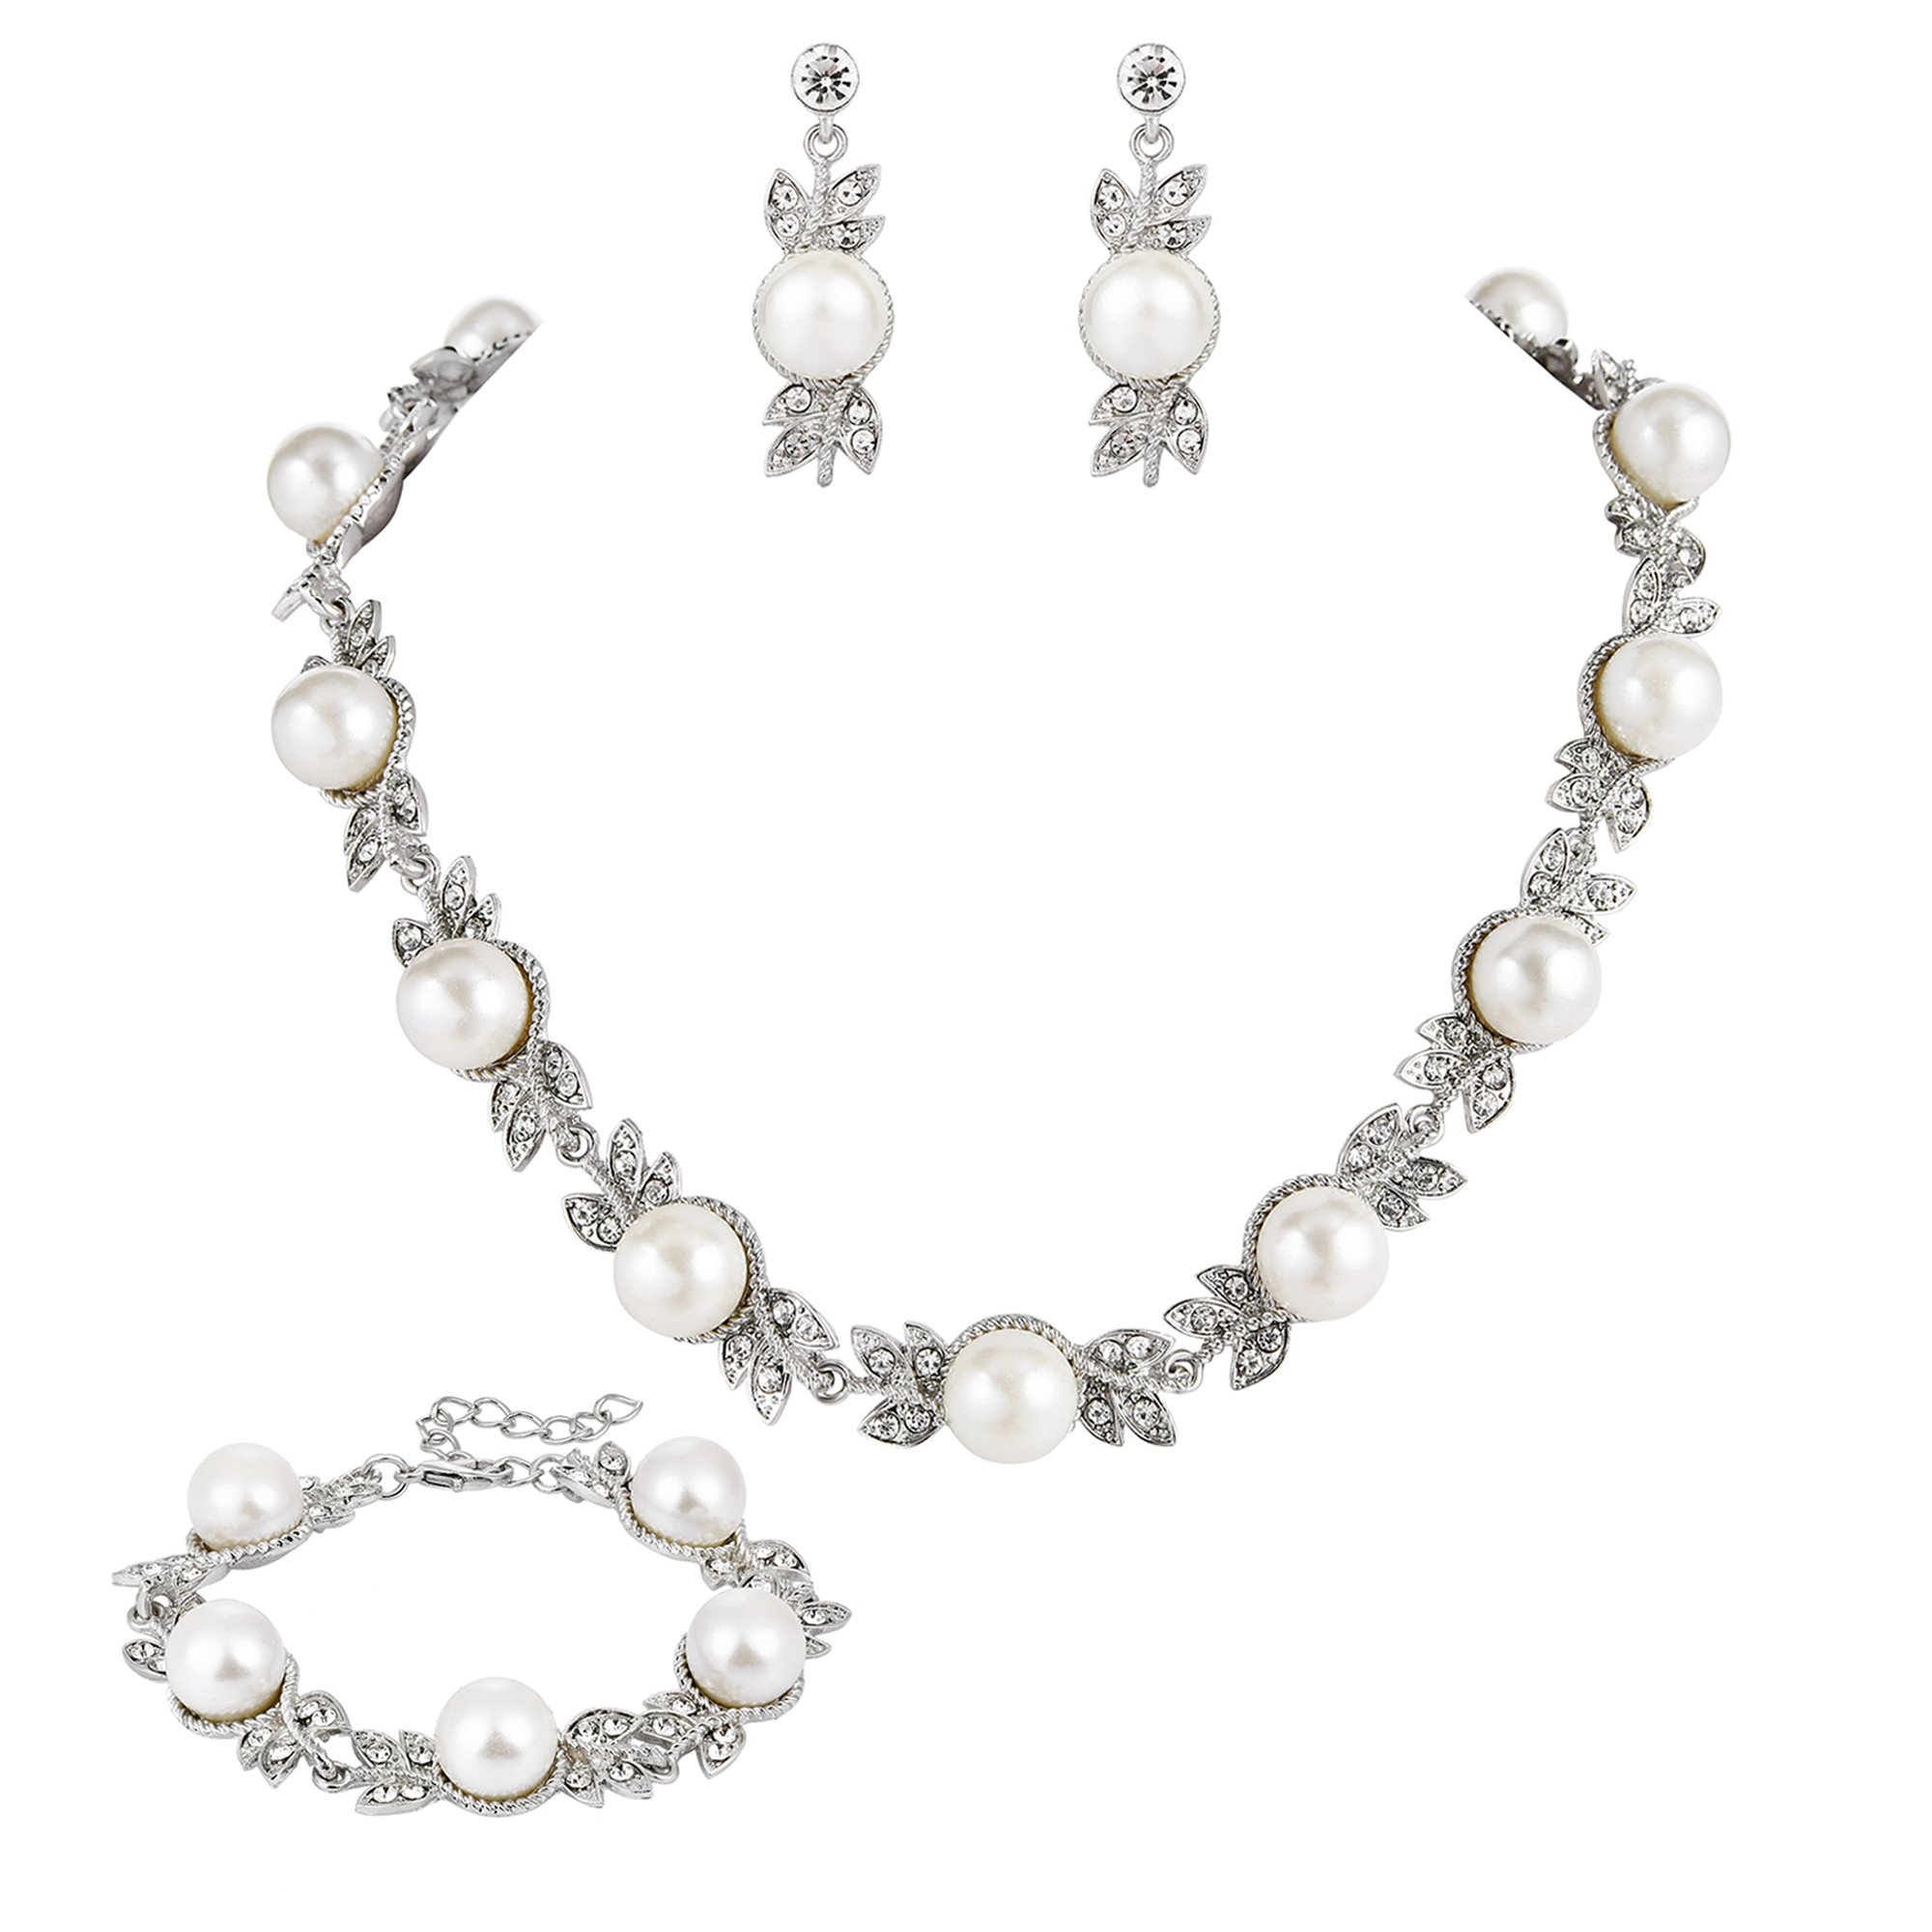 BriLove Wedding Bridal Simulated Pearl Necklace Earrings Jewelry Set for Women Crystal Cream Floral Leaf Collar Necklace Dangle Earrings Tennis Bracelet Set Clear Silver-Tone by BriLove (Image #1)